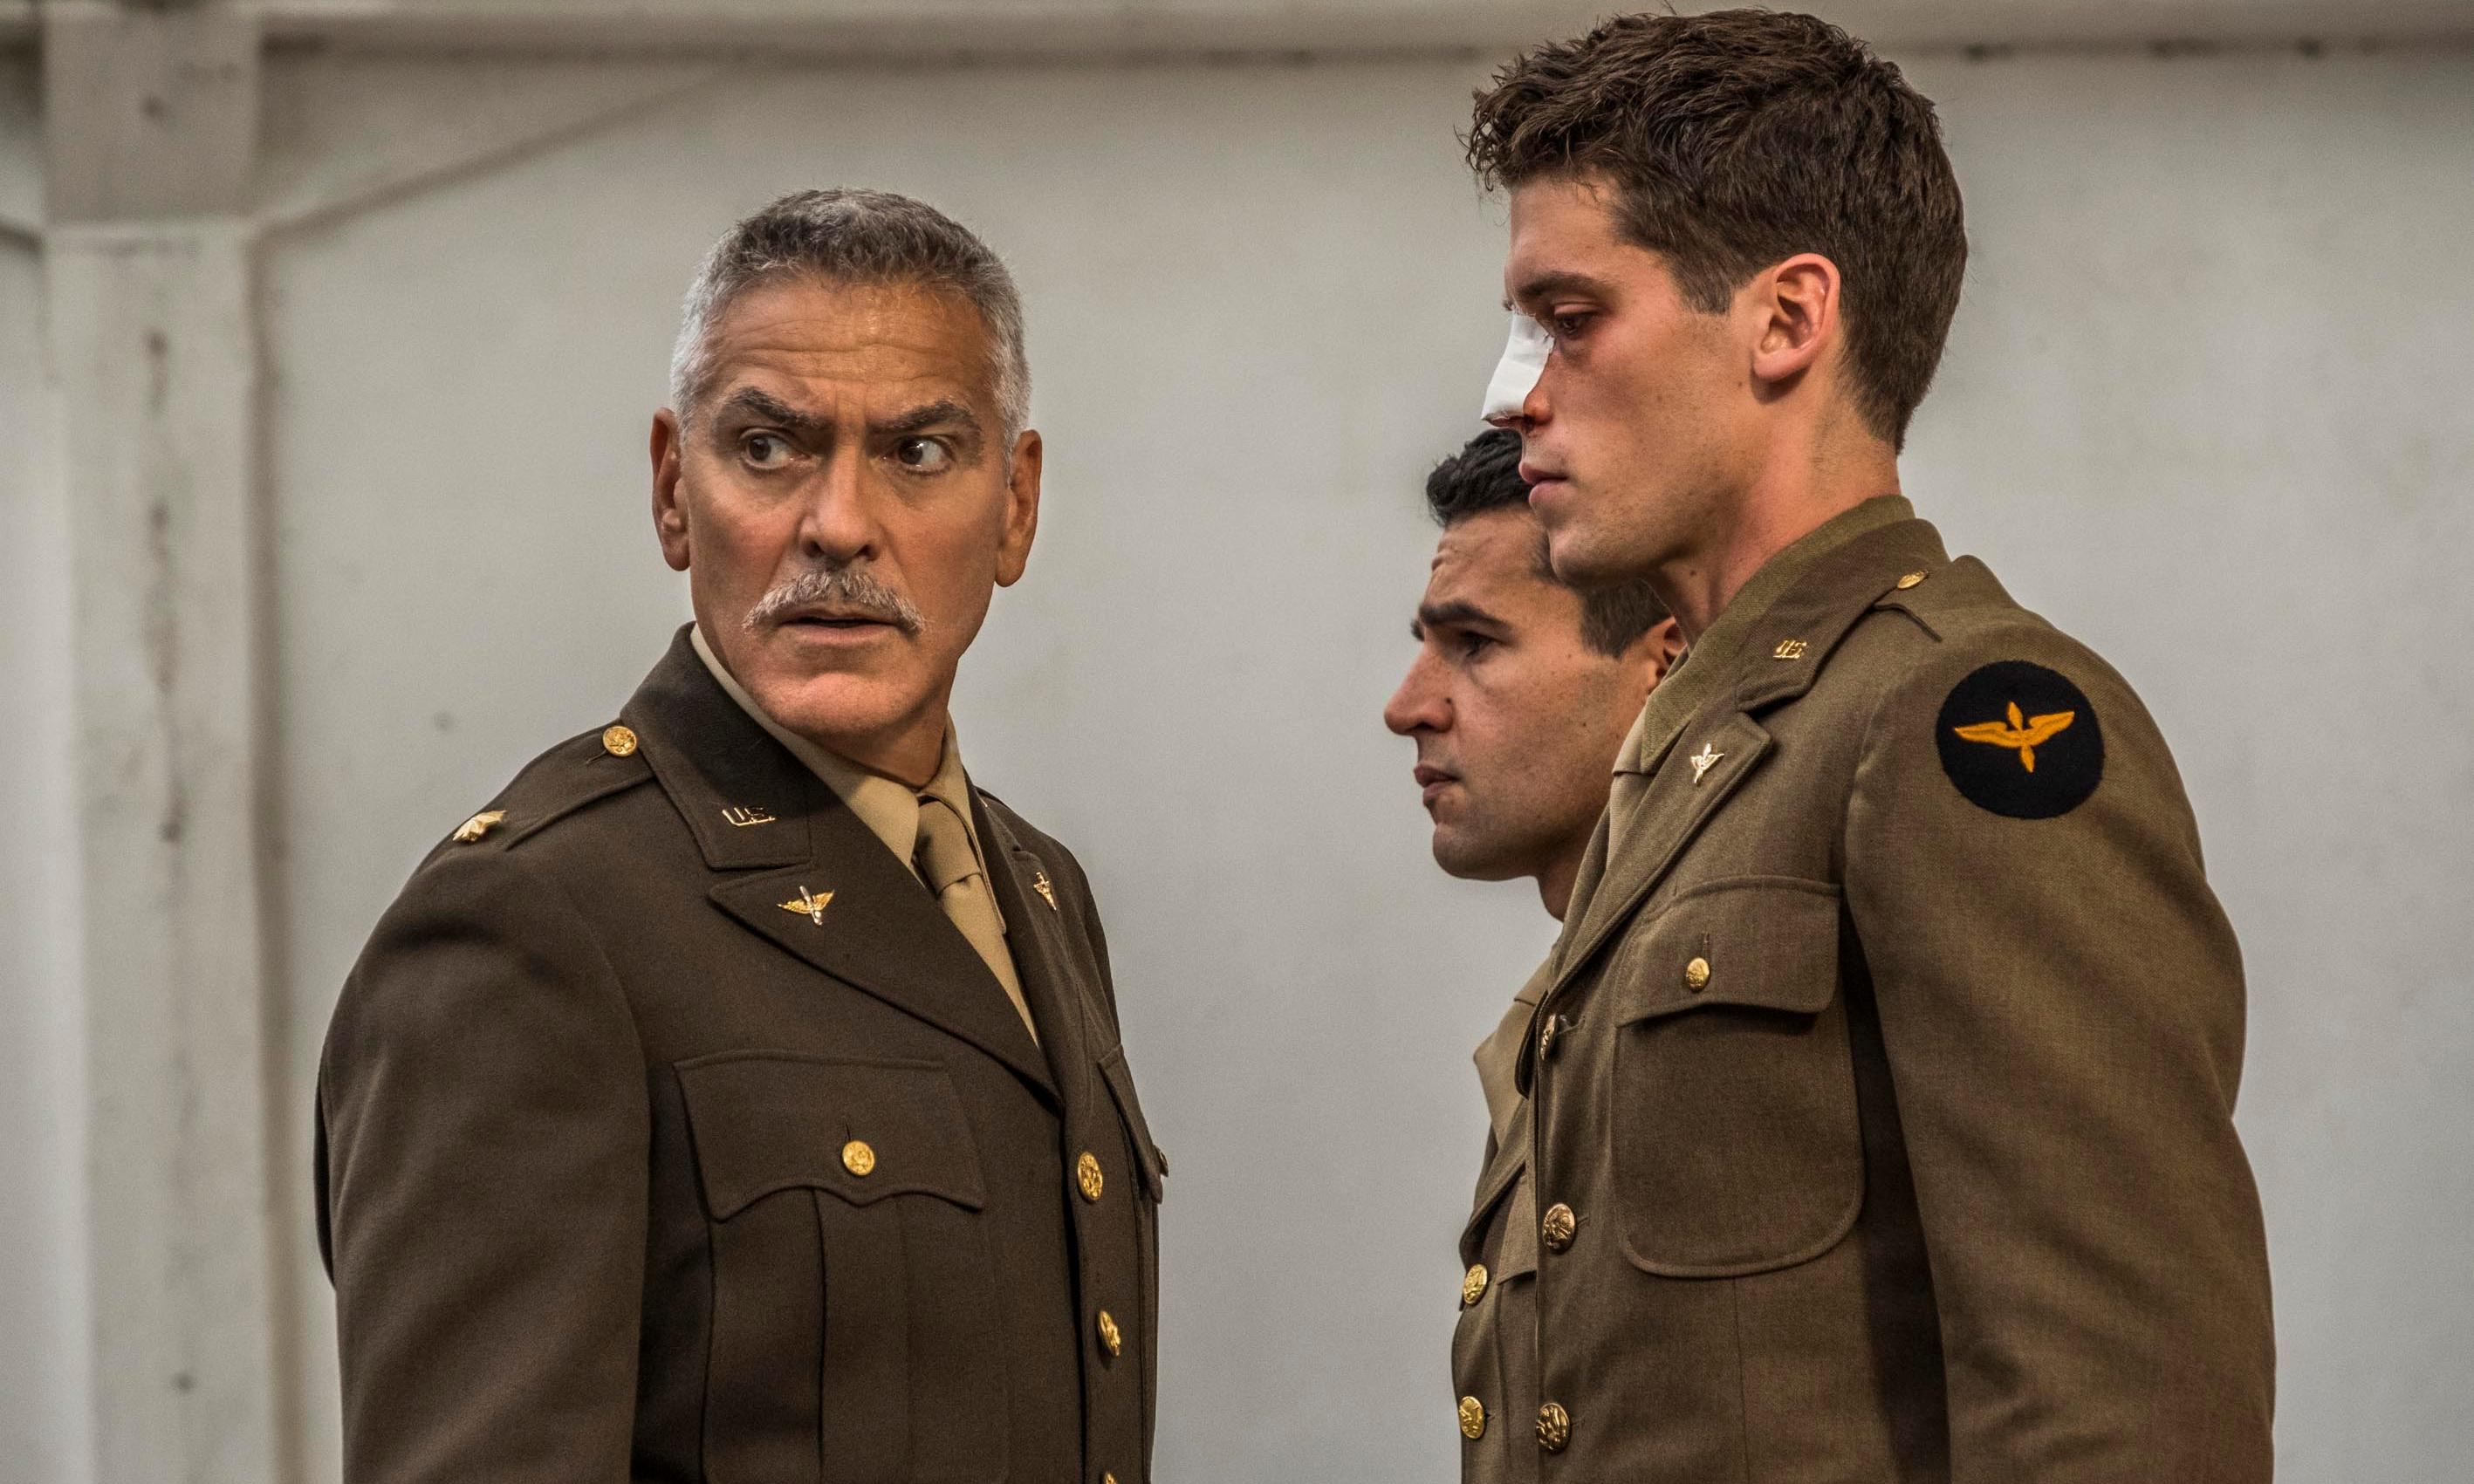 TV tonight: George Clooney brings Joseph Heller's Catch-22 to the small screen